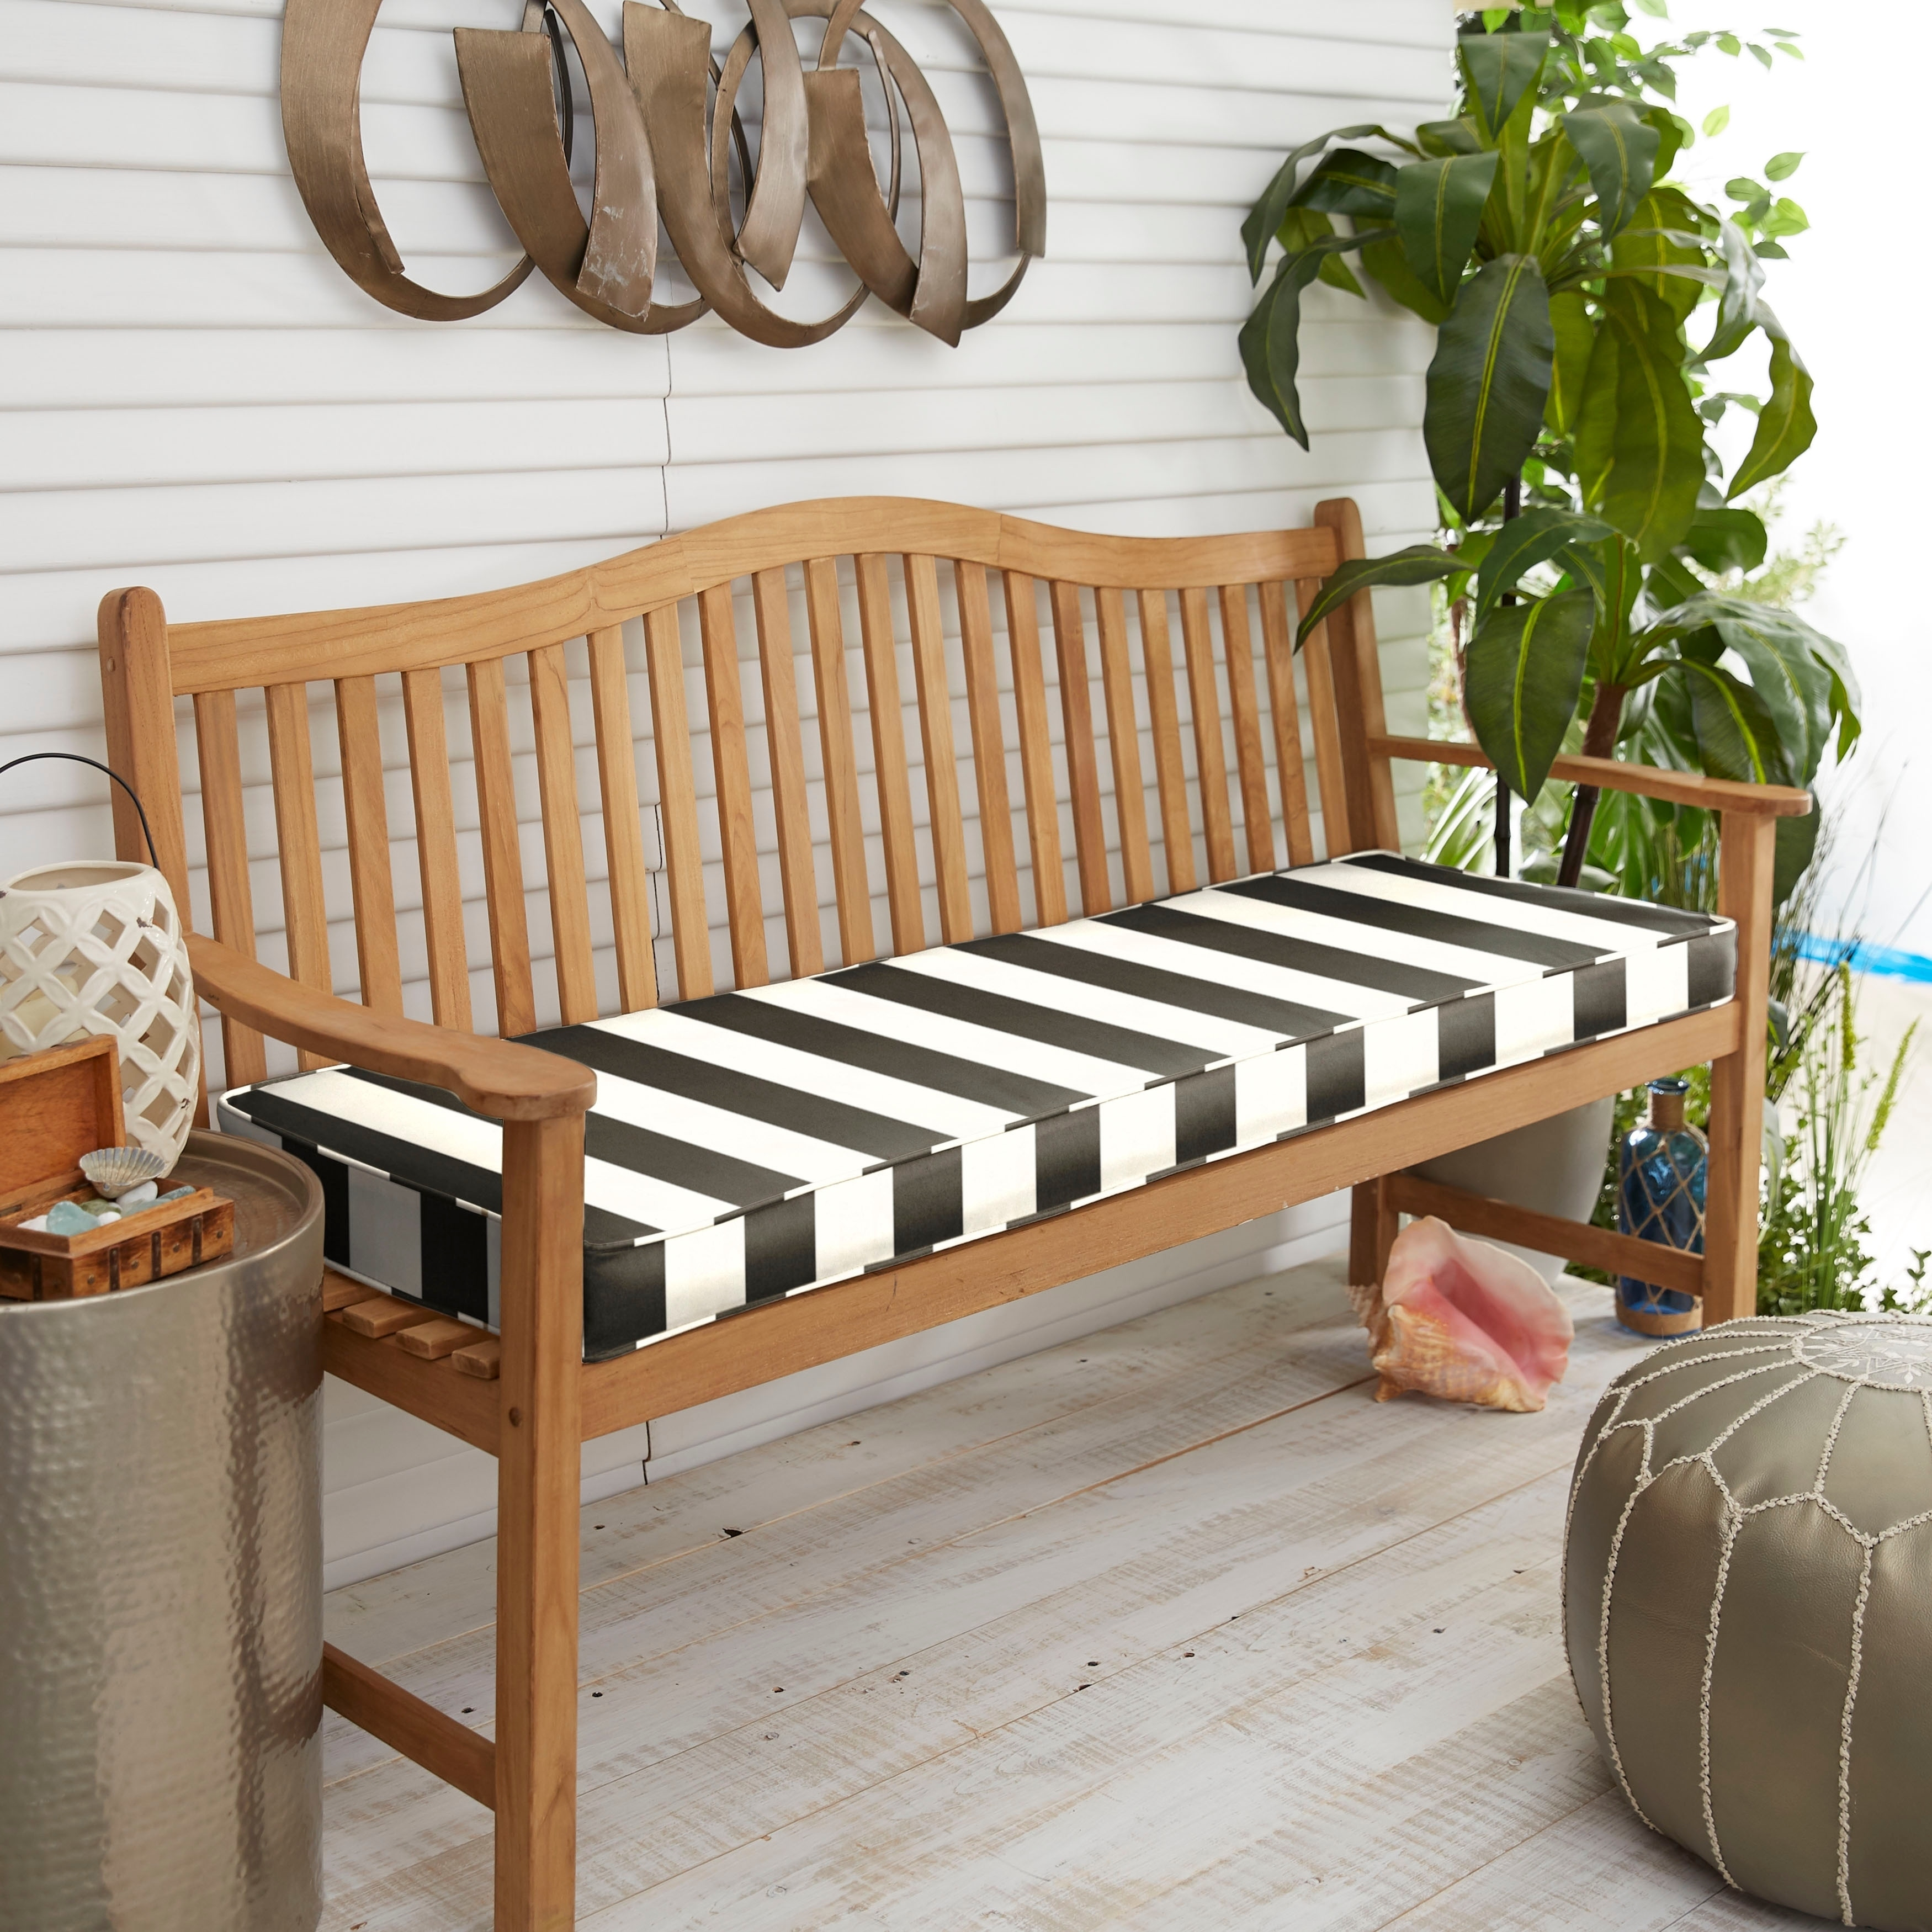 Sunbrella Black White Stripe Indoor Outdoor Bench Cushion 37 To 48 Corded Overstock 23561710